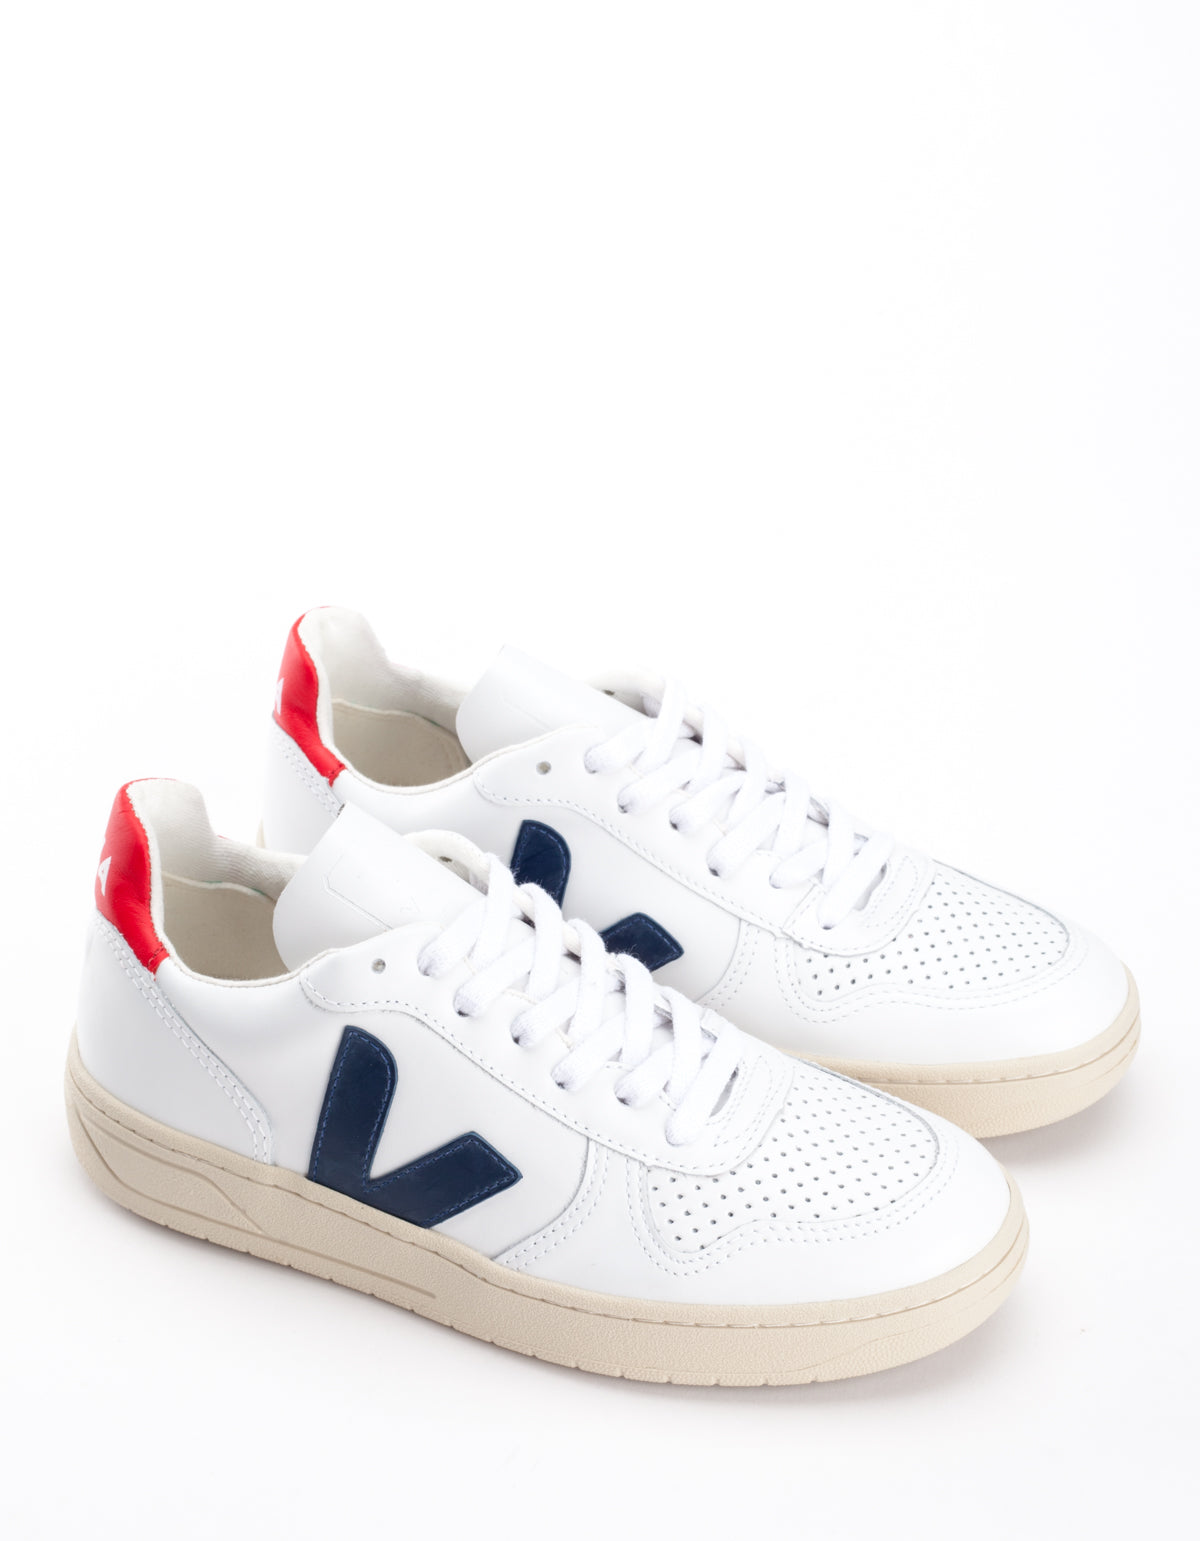 Women's Veja V-10 Extra White Nautico Pekin buy cheap authentic marketable pictures discount codes clearance store BN18oub7W